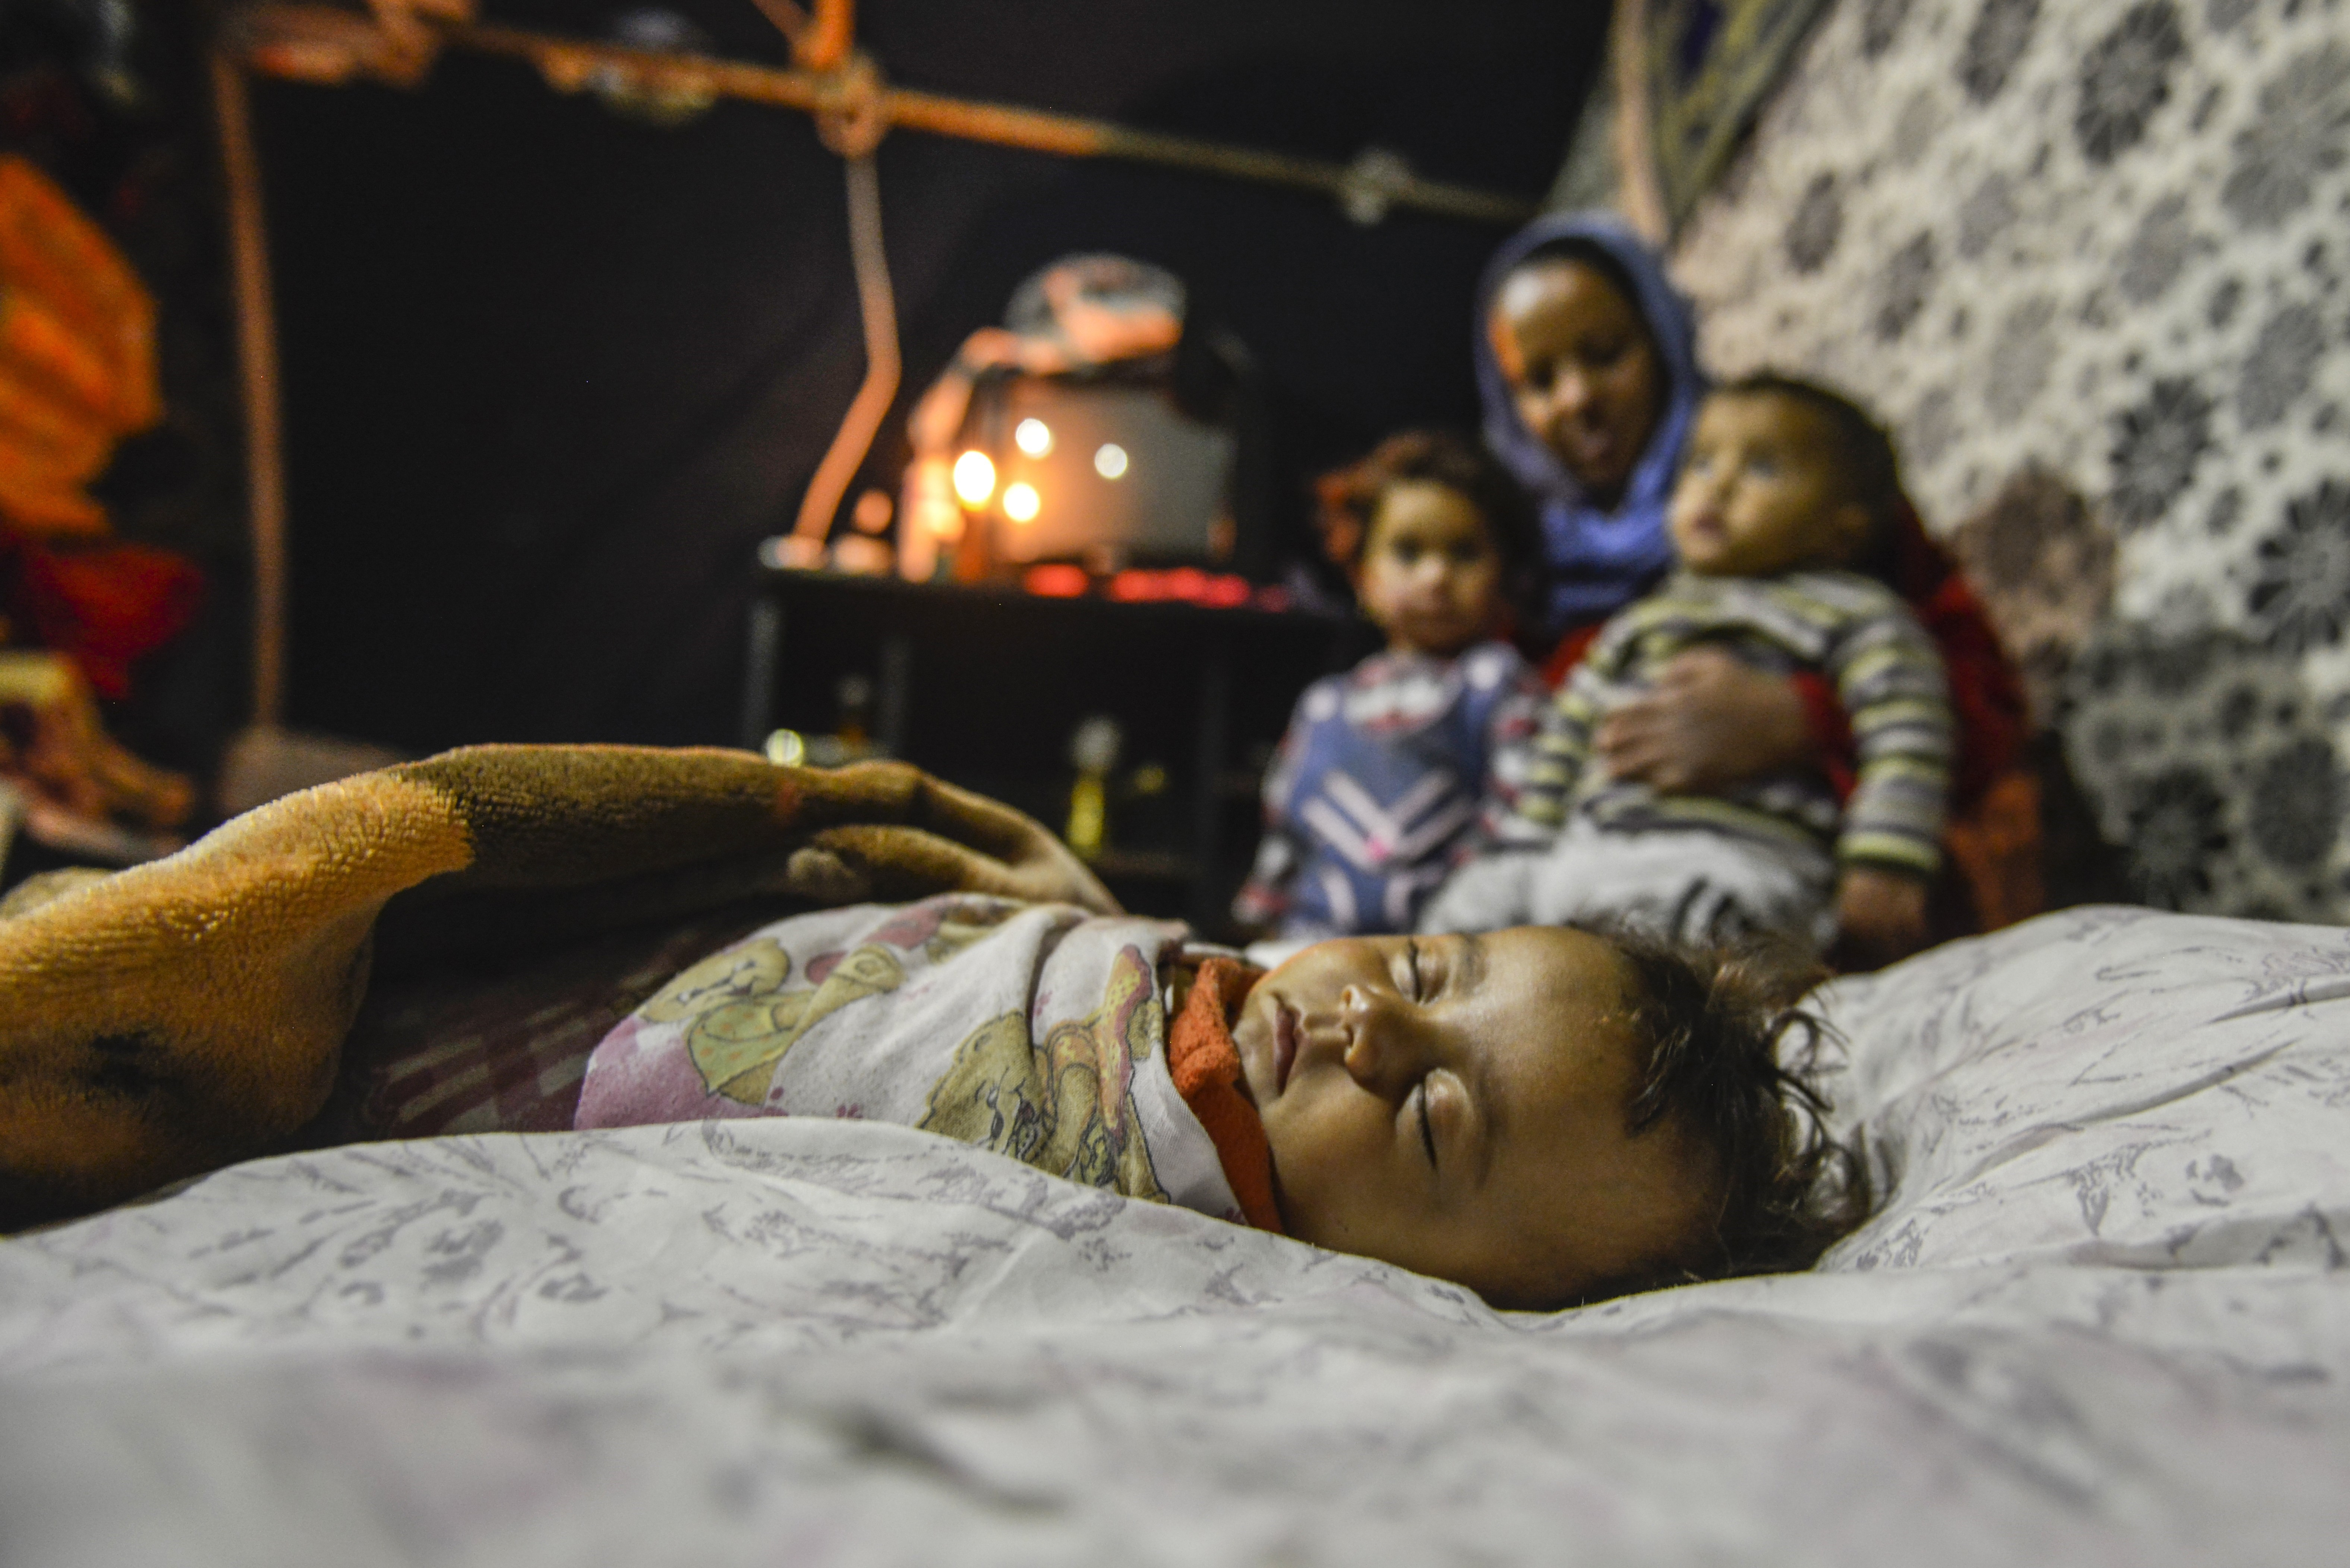 A Syrian refugee baby, who fled the civil war in his country, sleeps in his family's tent in Van, Turkey on November 16, 2015.